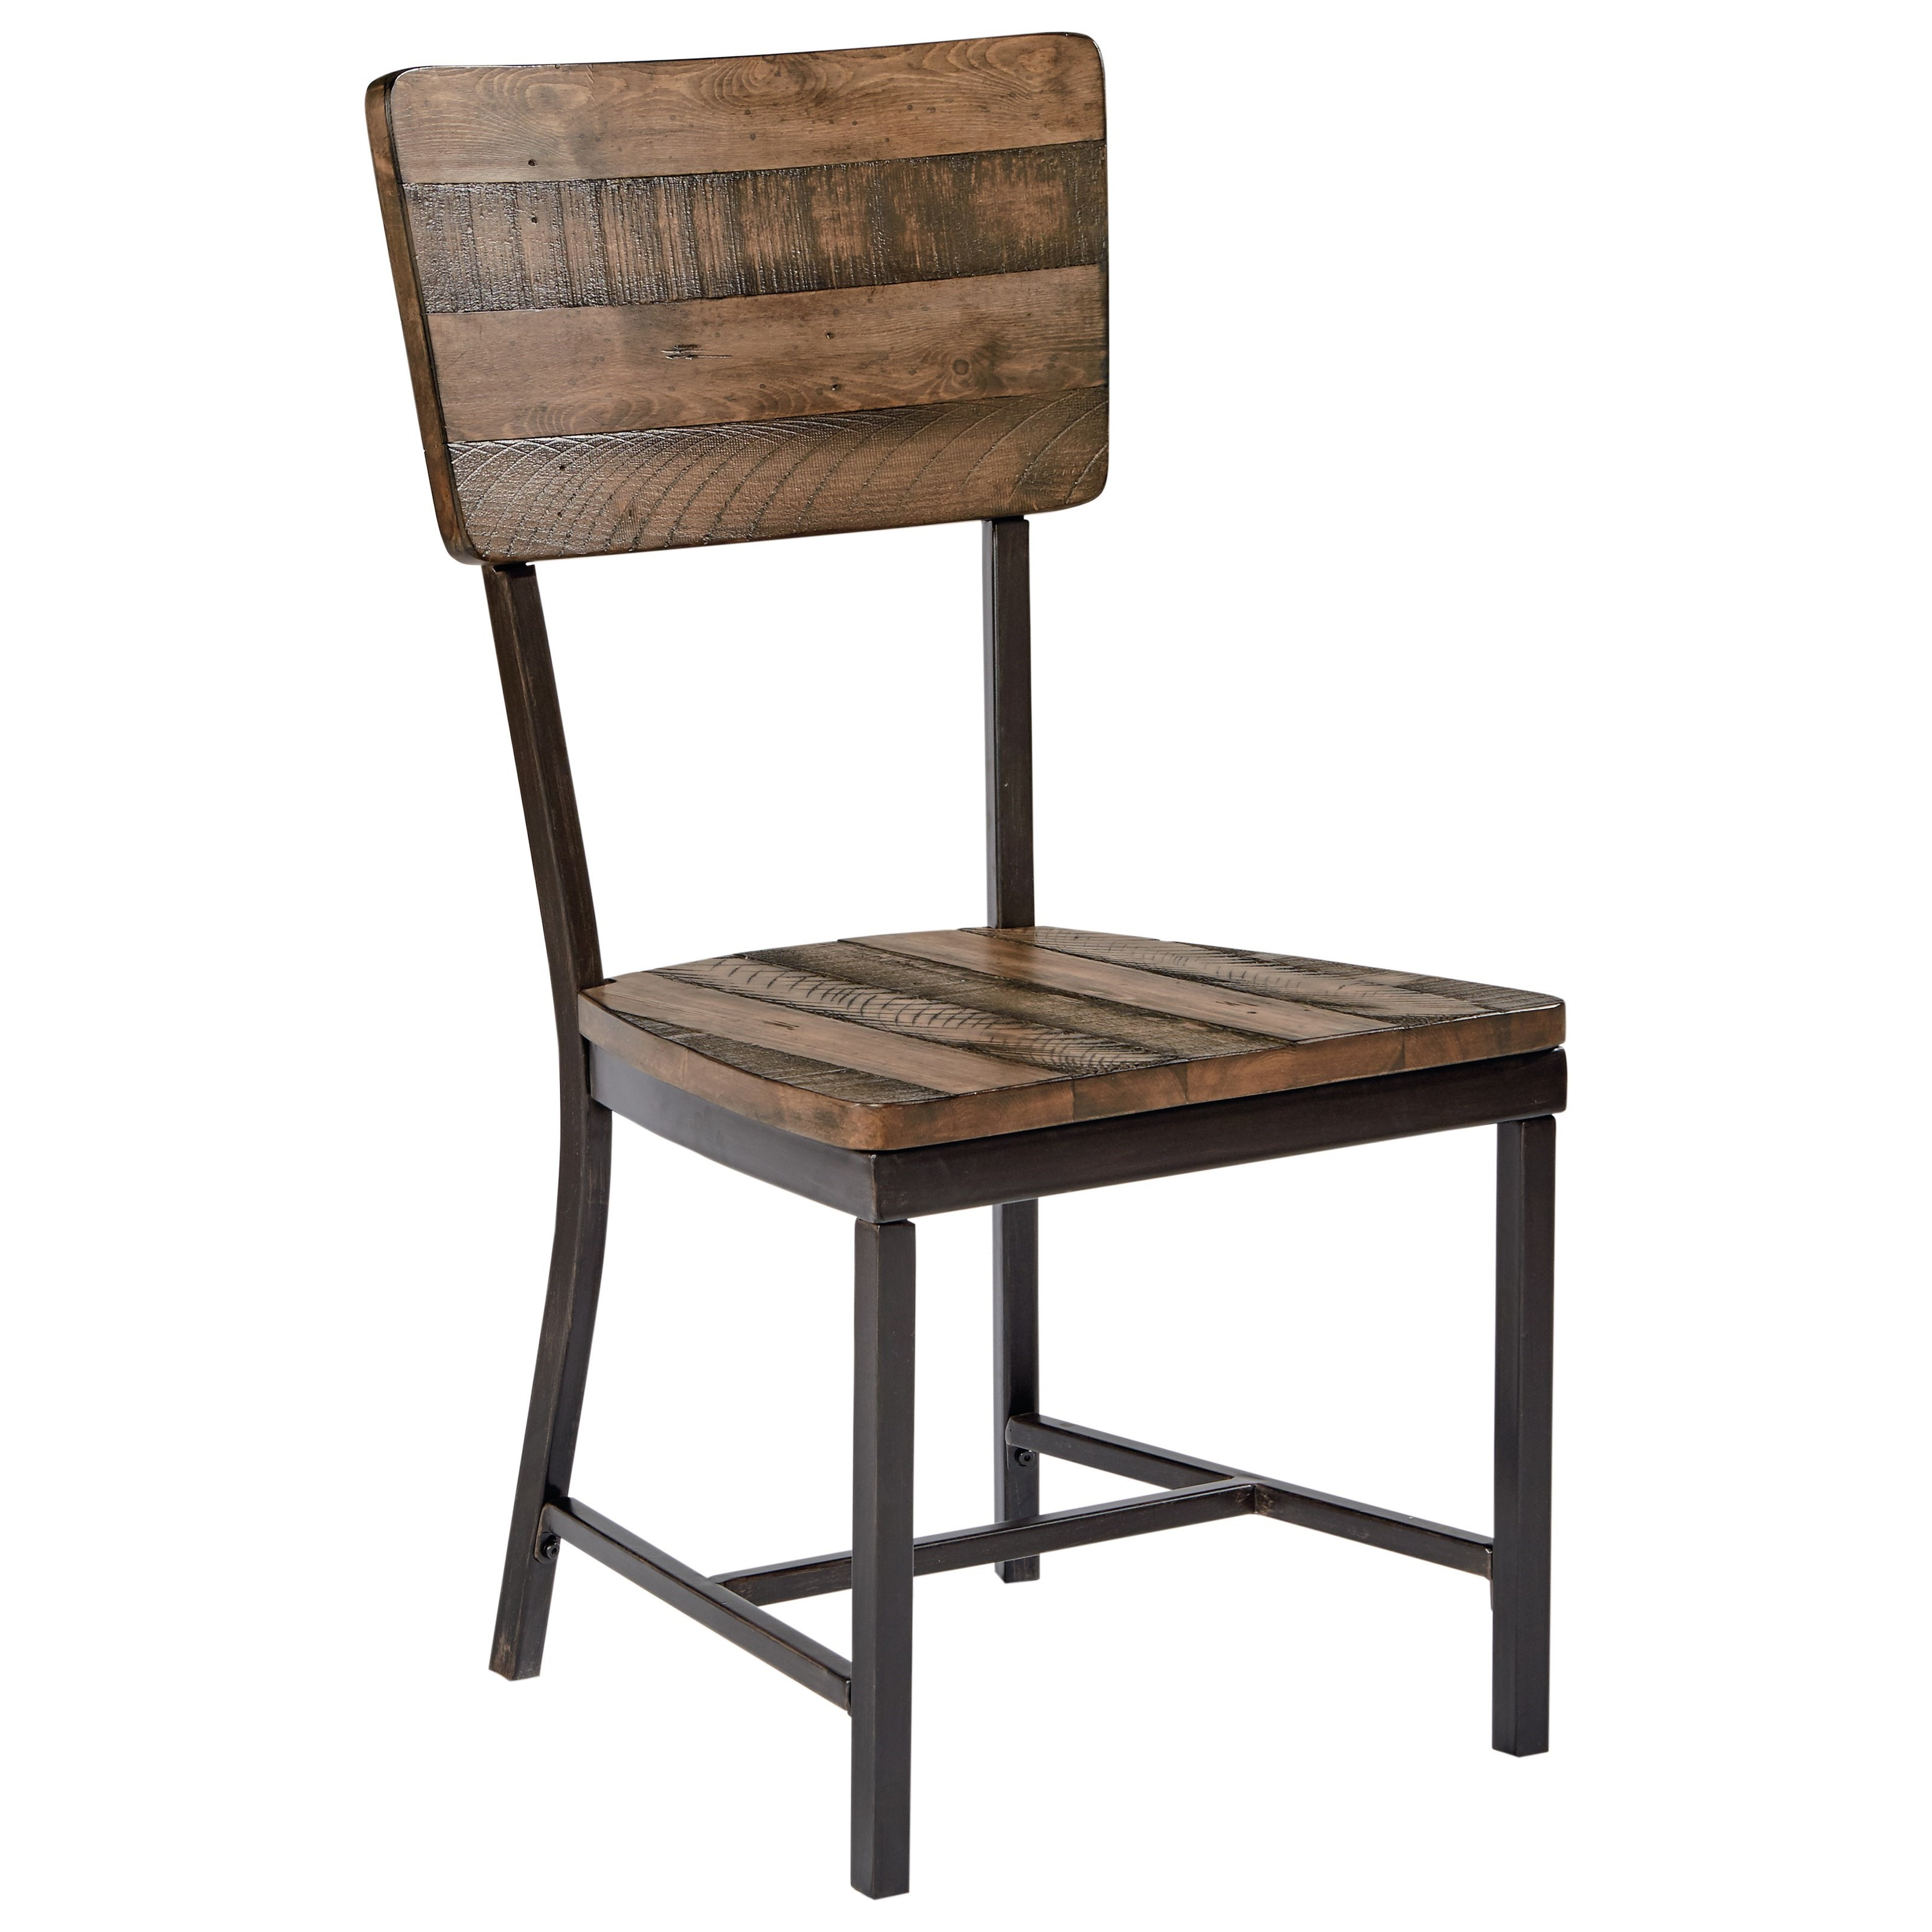 Magnolia Home By Joanna Gaines Industrial Rustic Side Chair Johnny Janosik Dining Side Chairs